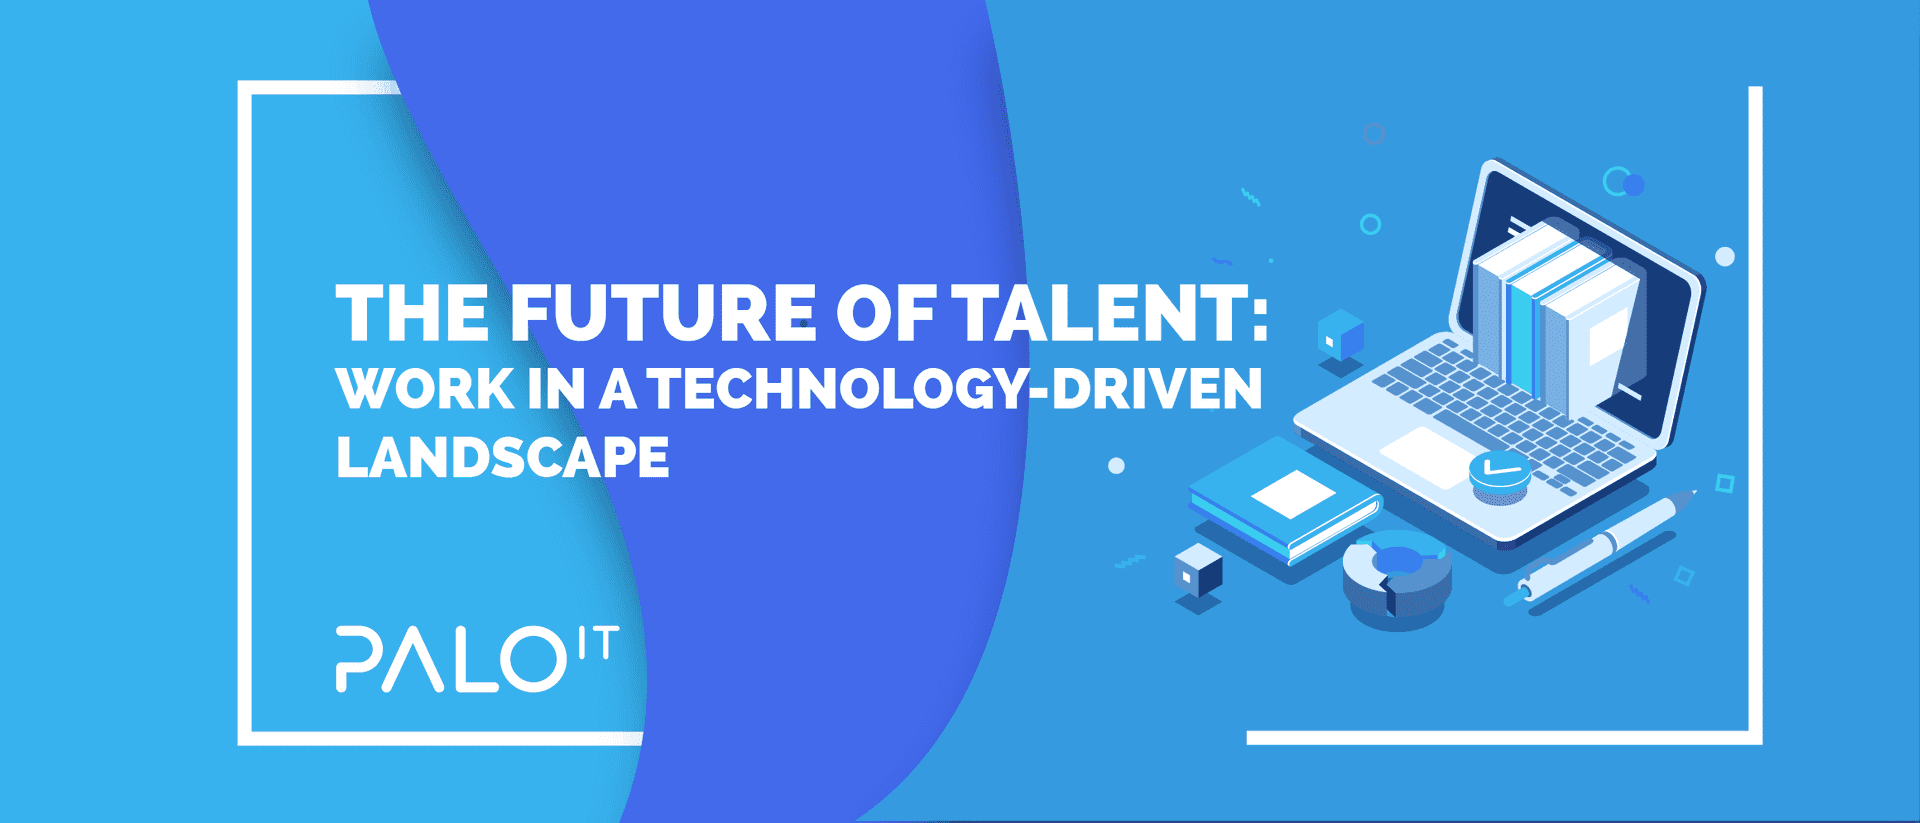 The Future of Talent: Work In a Technology-Driven Landscape